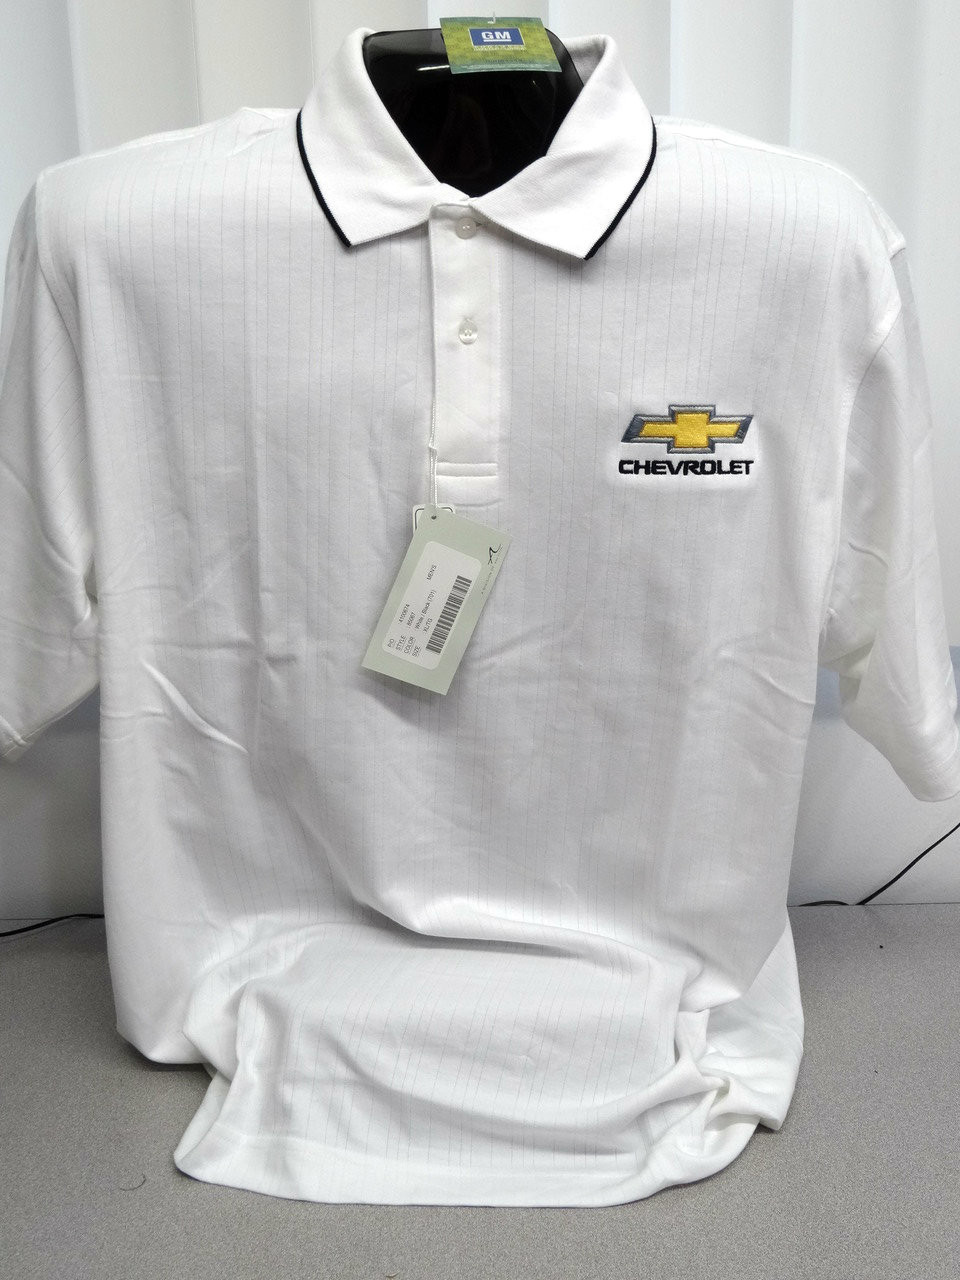 CHEVROLET LATE MODEL BOWTIE TEXTURED GM LICENSED POLO SHIRT